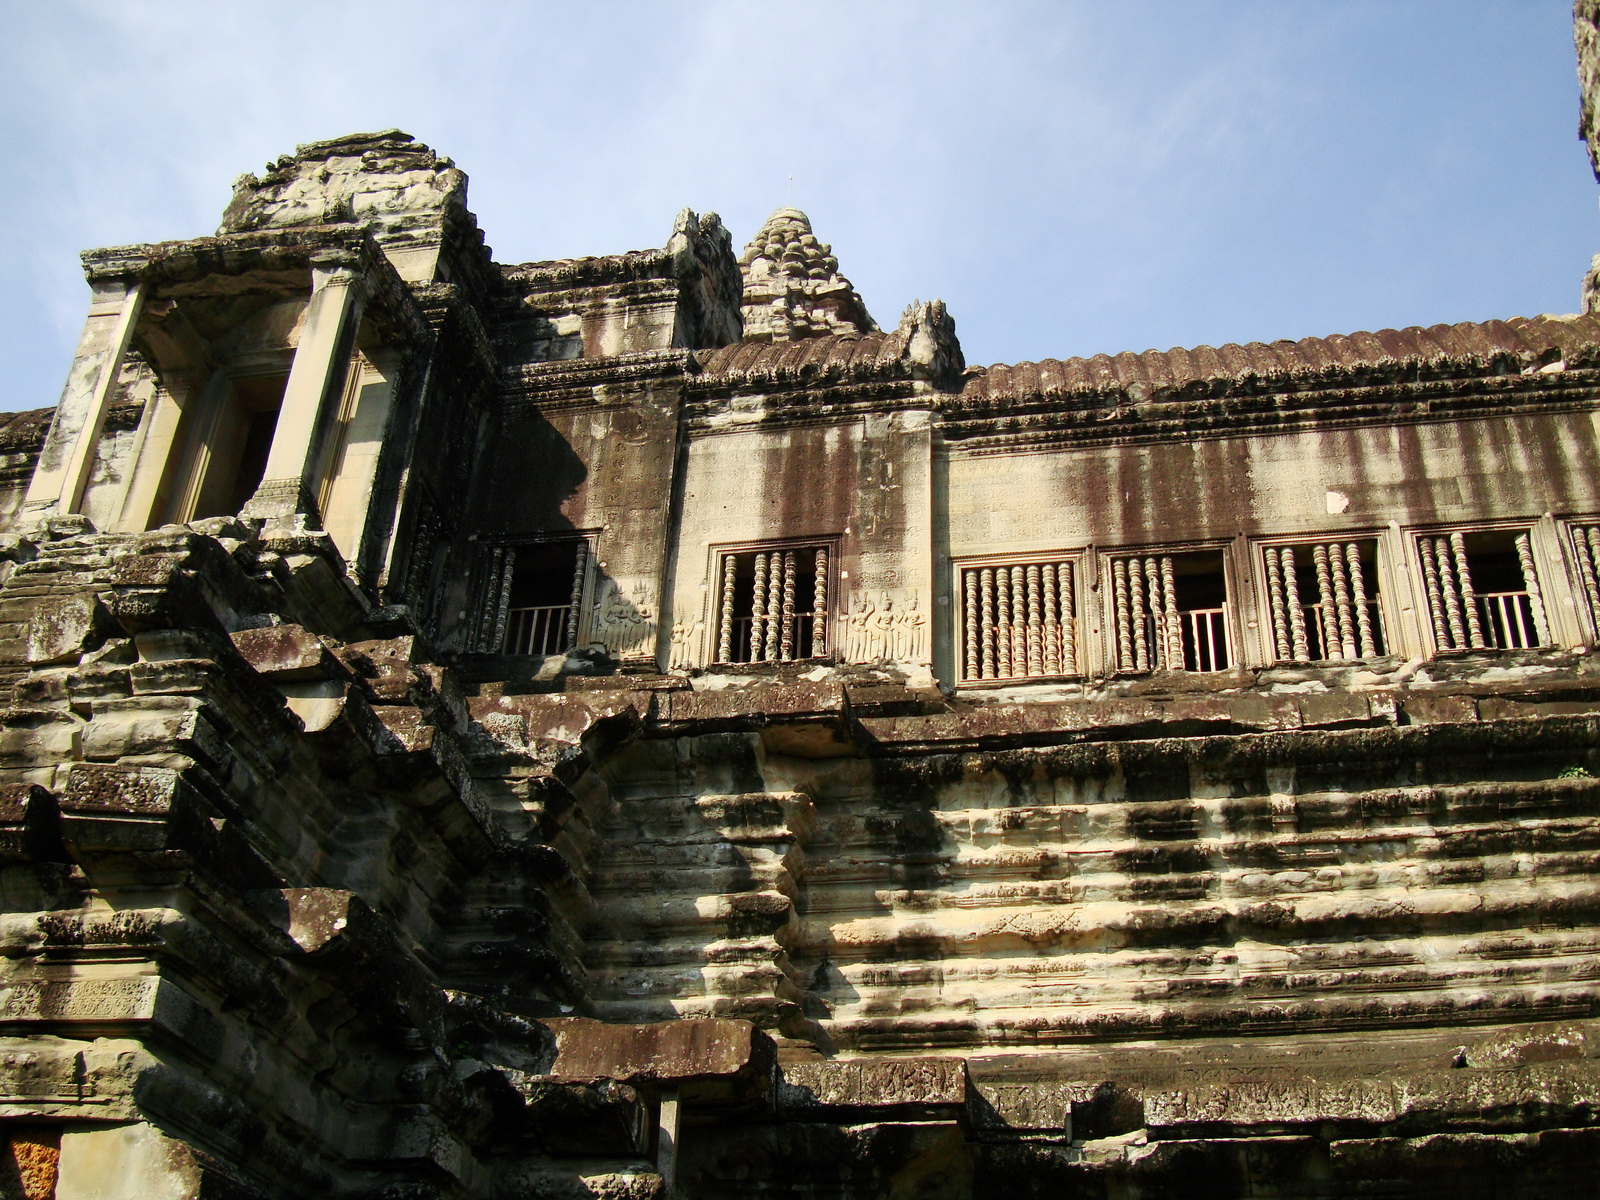 Angkor Wat Khmer architecture inner sanctuary towers 08